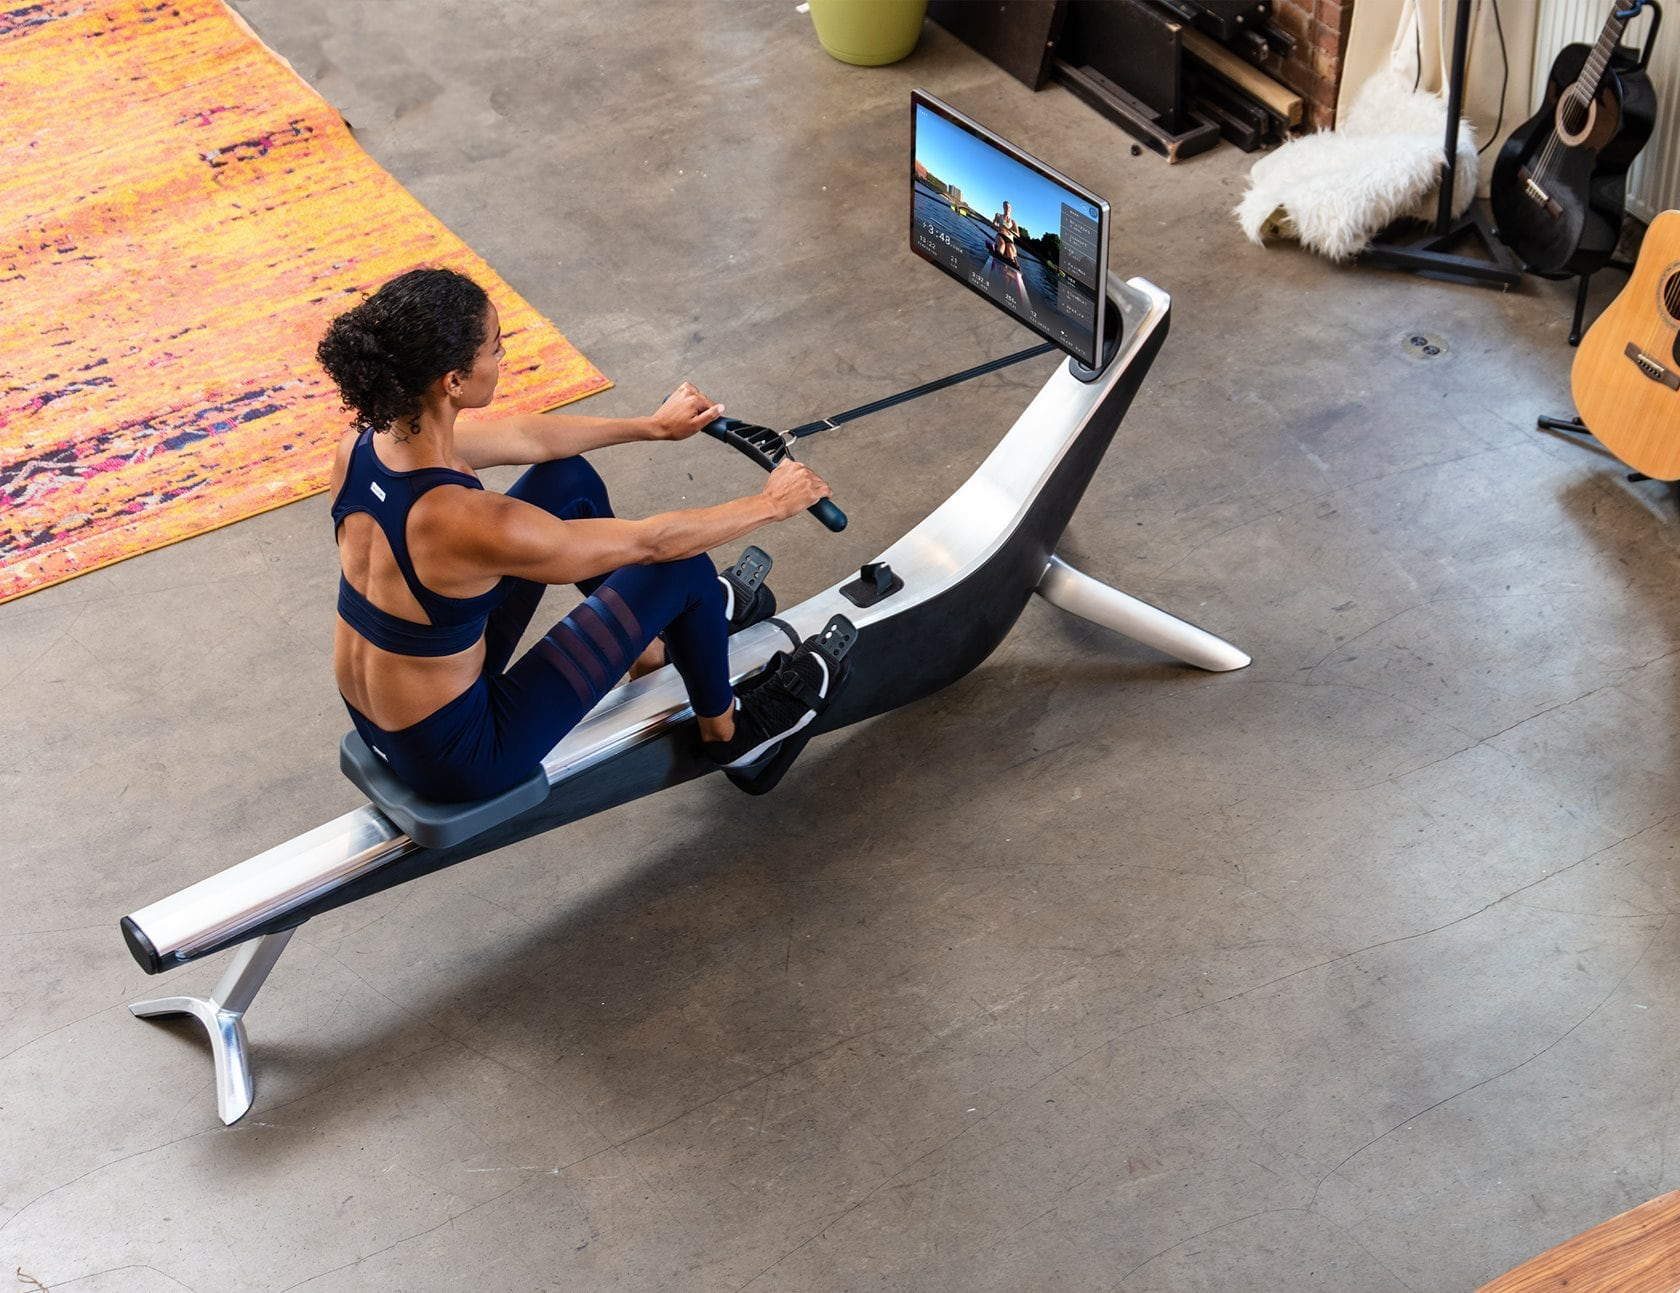 High-tech sports gear to help you reach all your fitness goals at home